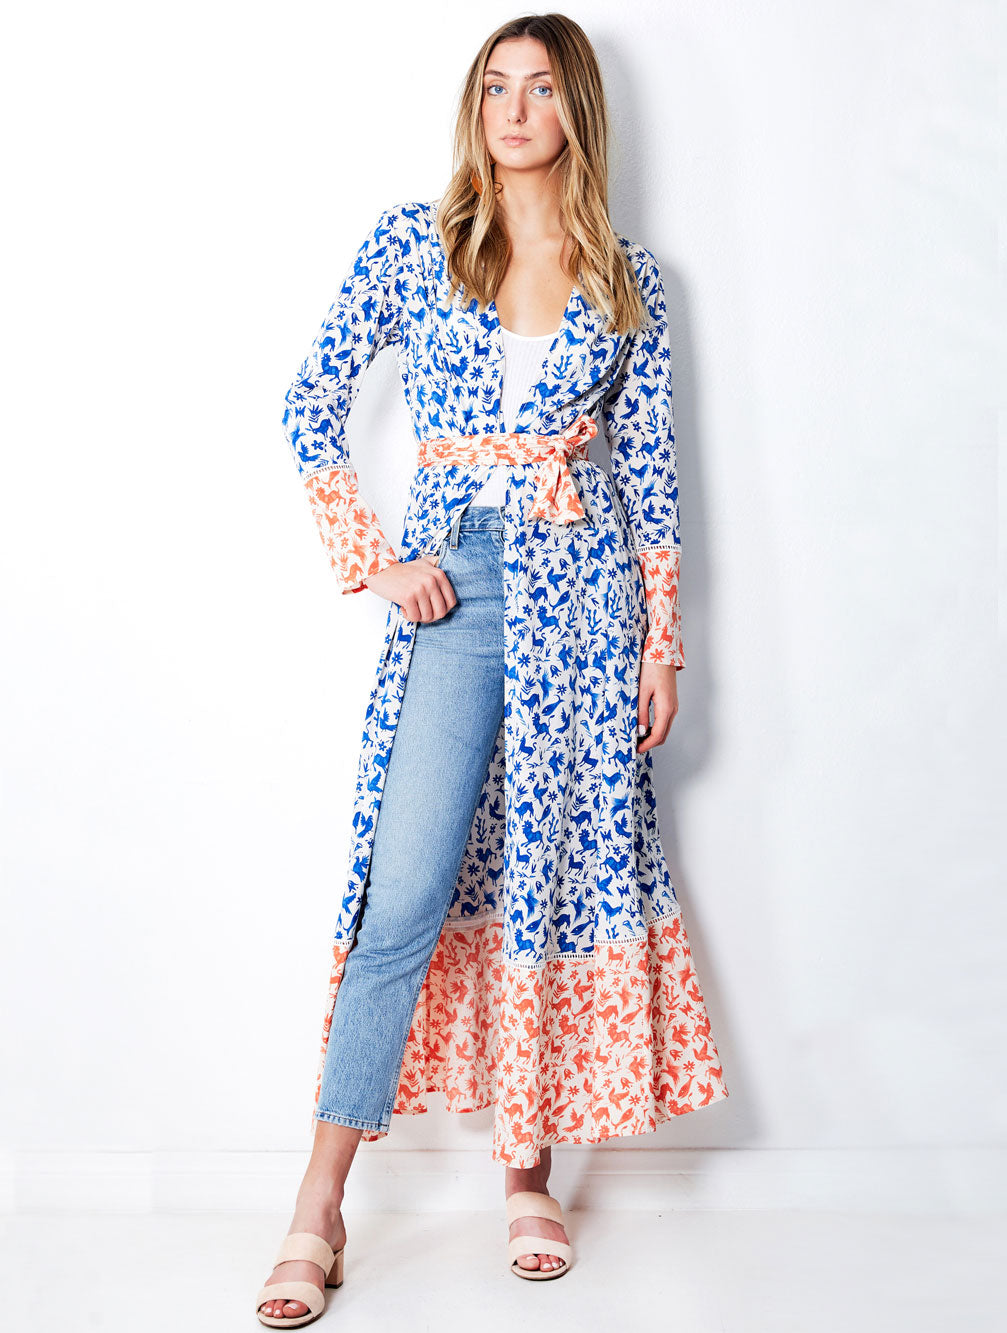 BLUE MEXICAN MAXI ROBE - Kaia London